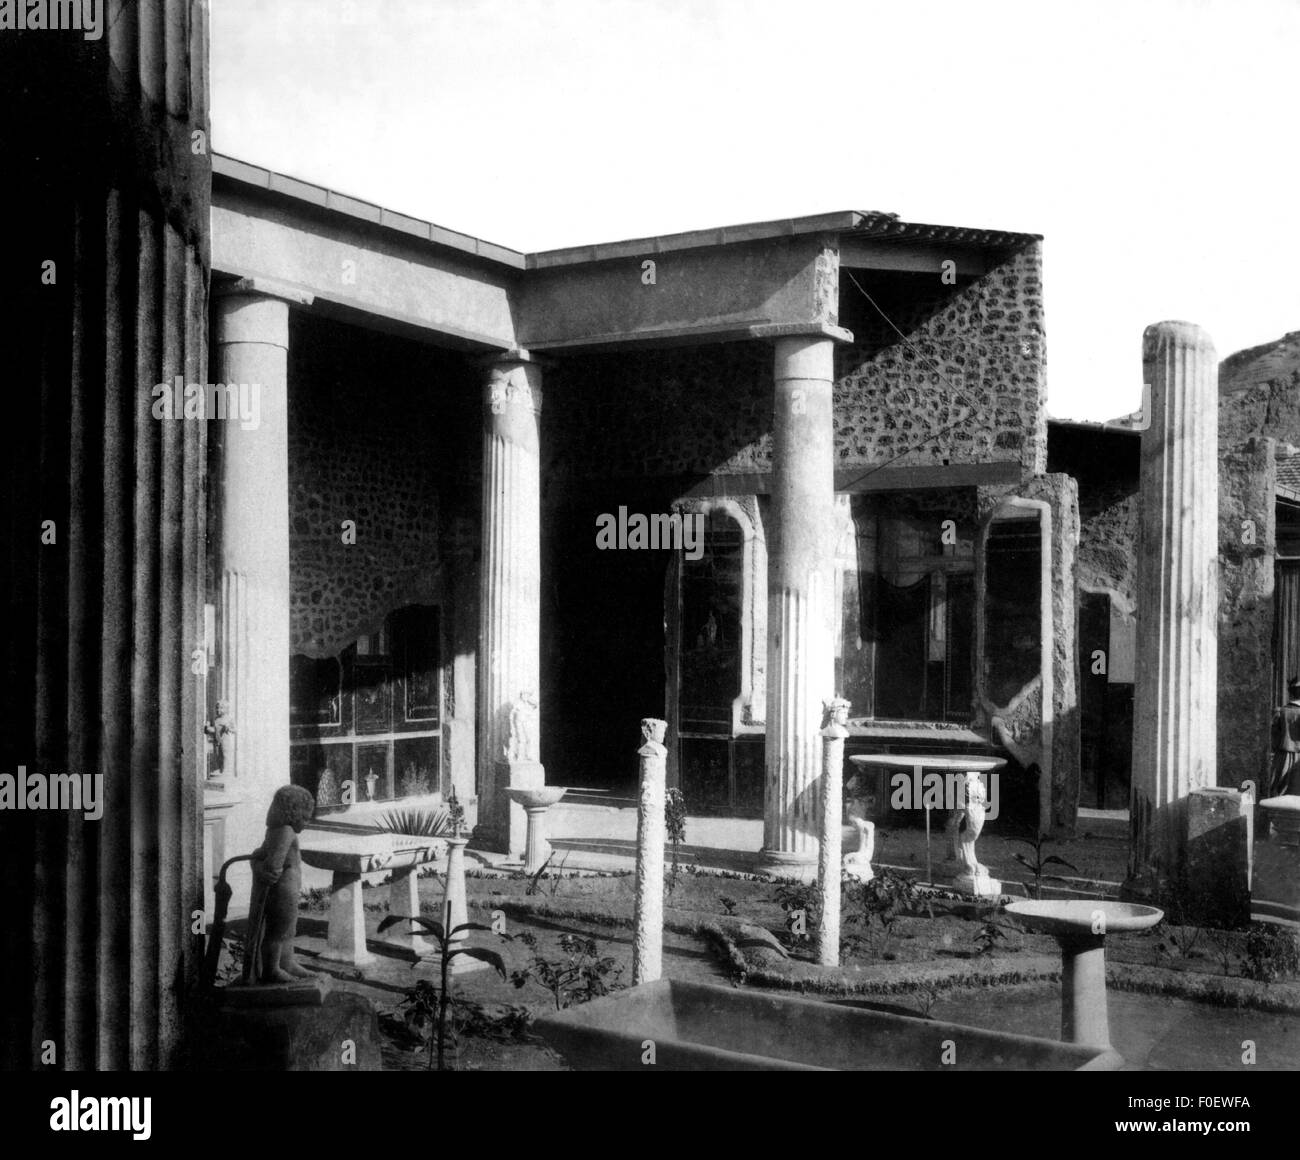 geography / travel, Italy, Pompeii, excavations, view of the Casa Vetti (House of the Vetti), circa 1890, Additional - Stock Image